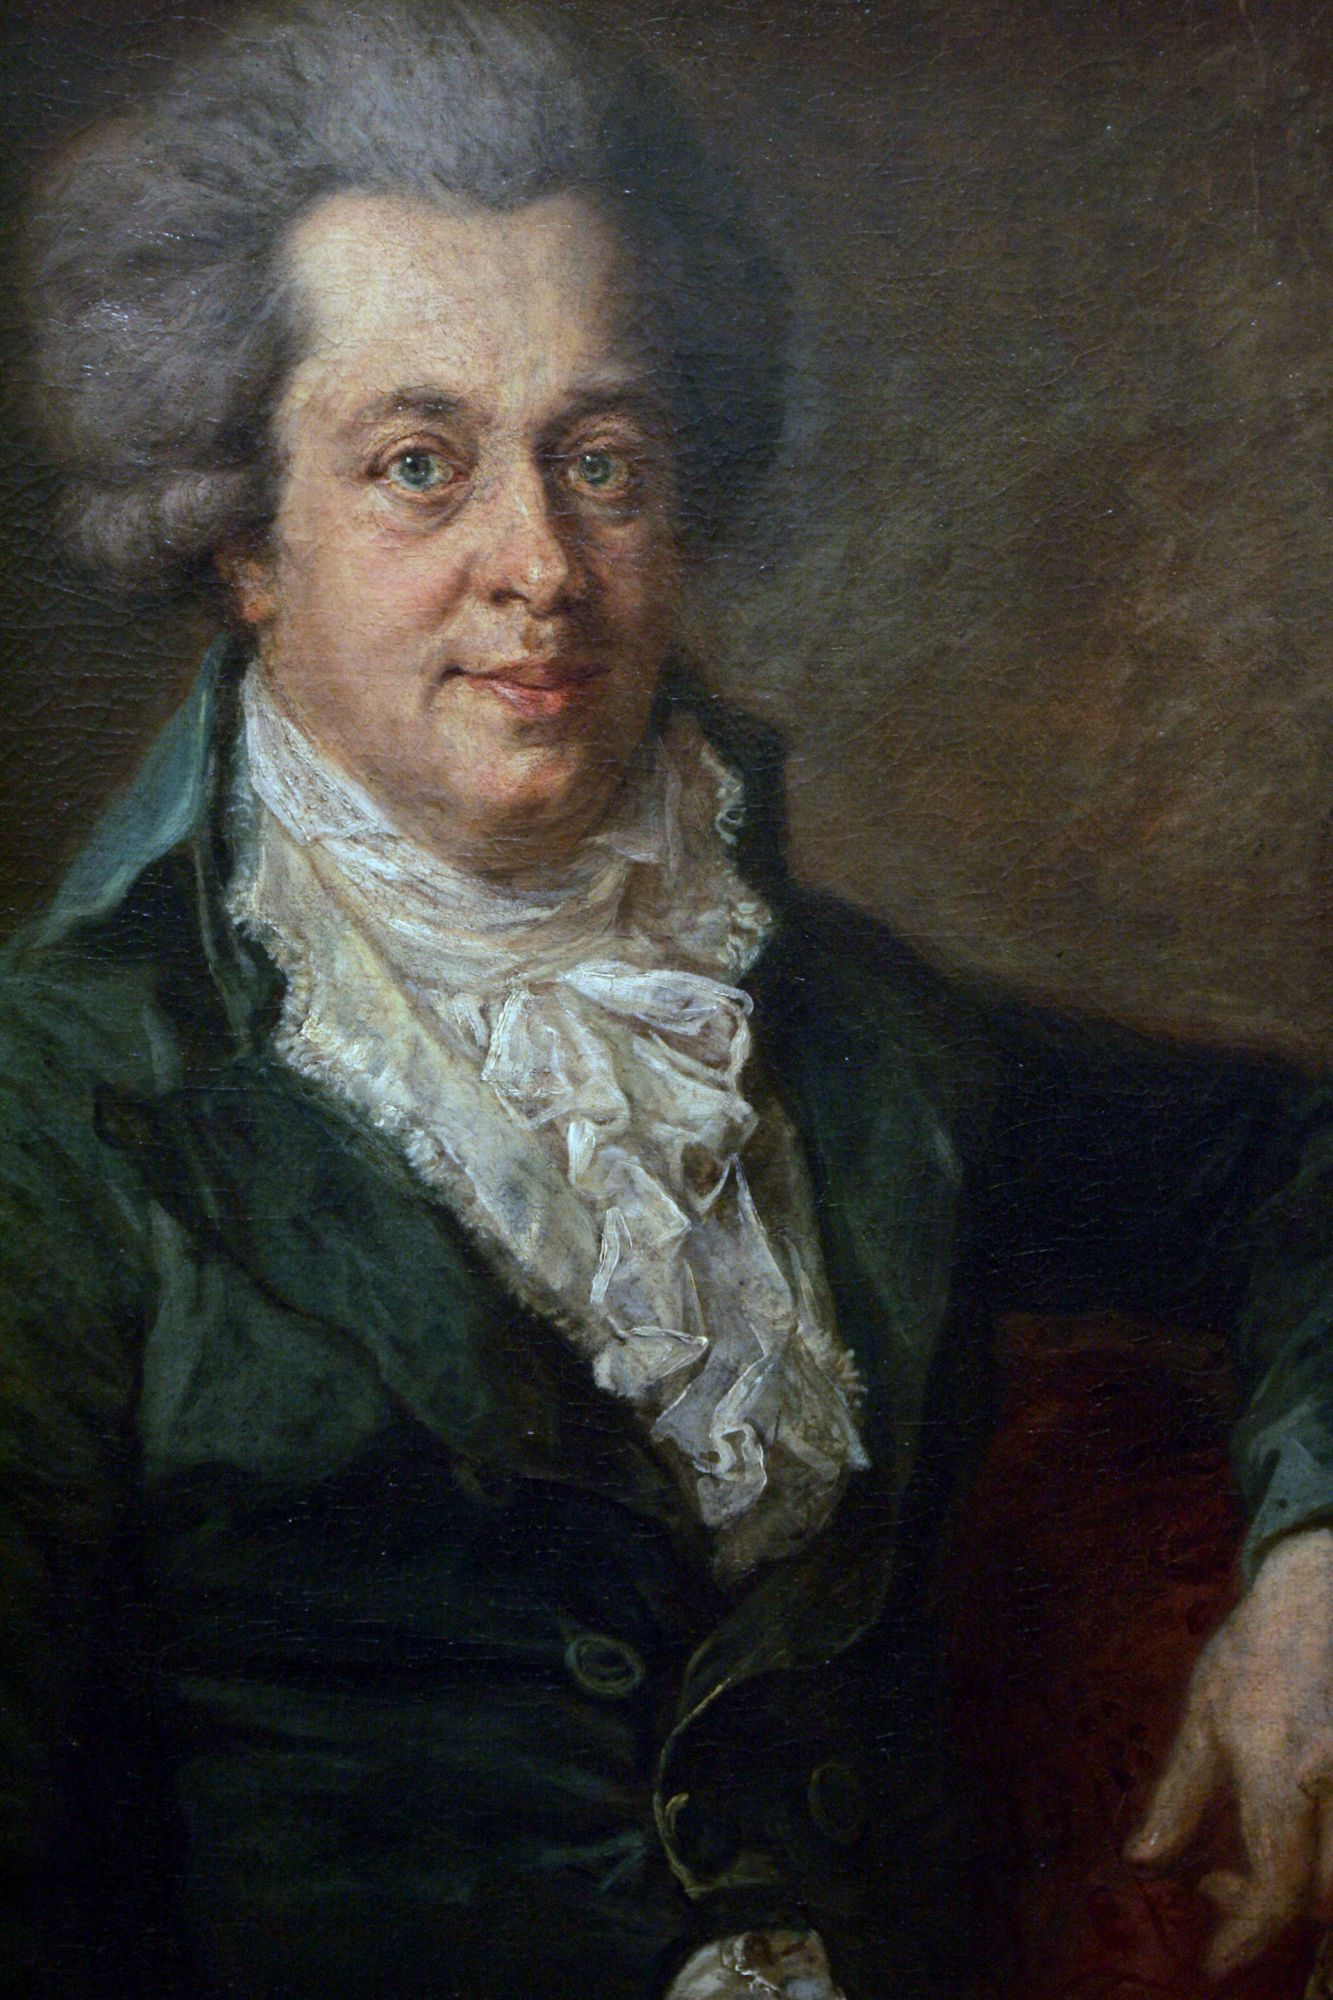 FOR USE EXCLUSIVELY WITH STORIES ON EDLINGER'S PAINTINGA portrait of Austrian Composer Wolfgang Amadeus Mozart (1756-1791) by German painter Johann Edlinger hangs in Berlin's Gemaeldegalerie 20 December 2005. The portrait, painted in 1790, is allegedly the last depiction of Mozart before his death. The painting was re-discovered in 1999, and has sparked controversy as not all specialists believe it depicts the Austrian composer. AFP PHOTO JOHN MACDOUGALL